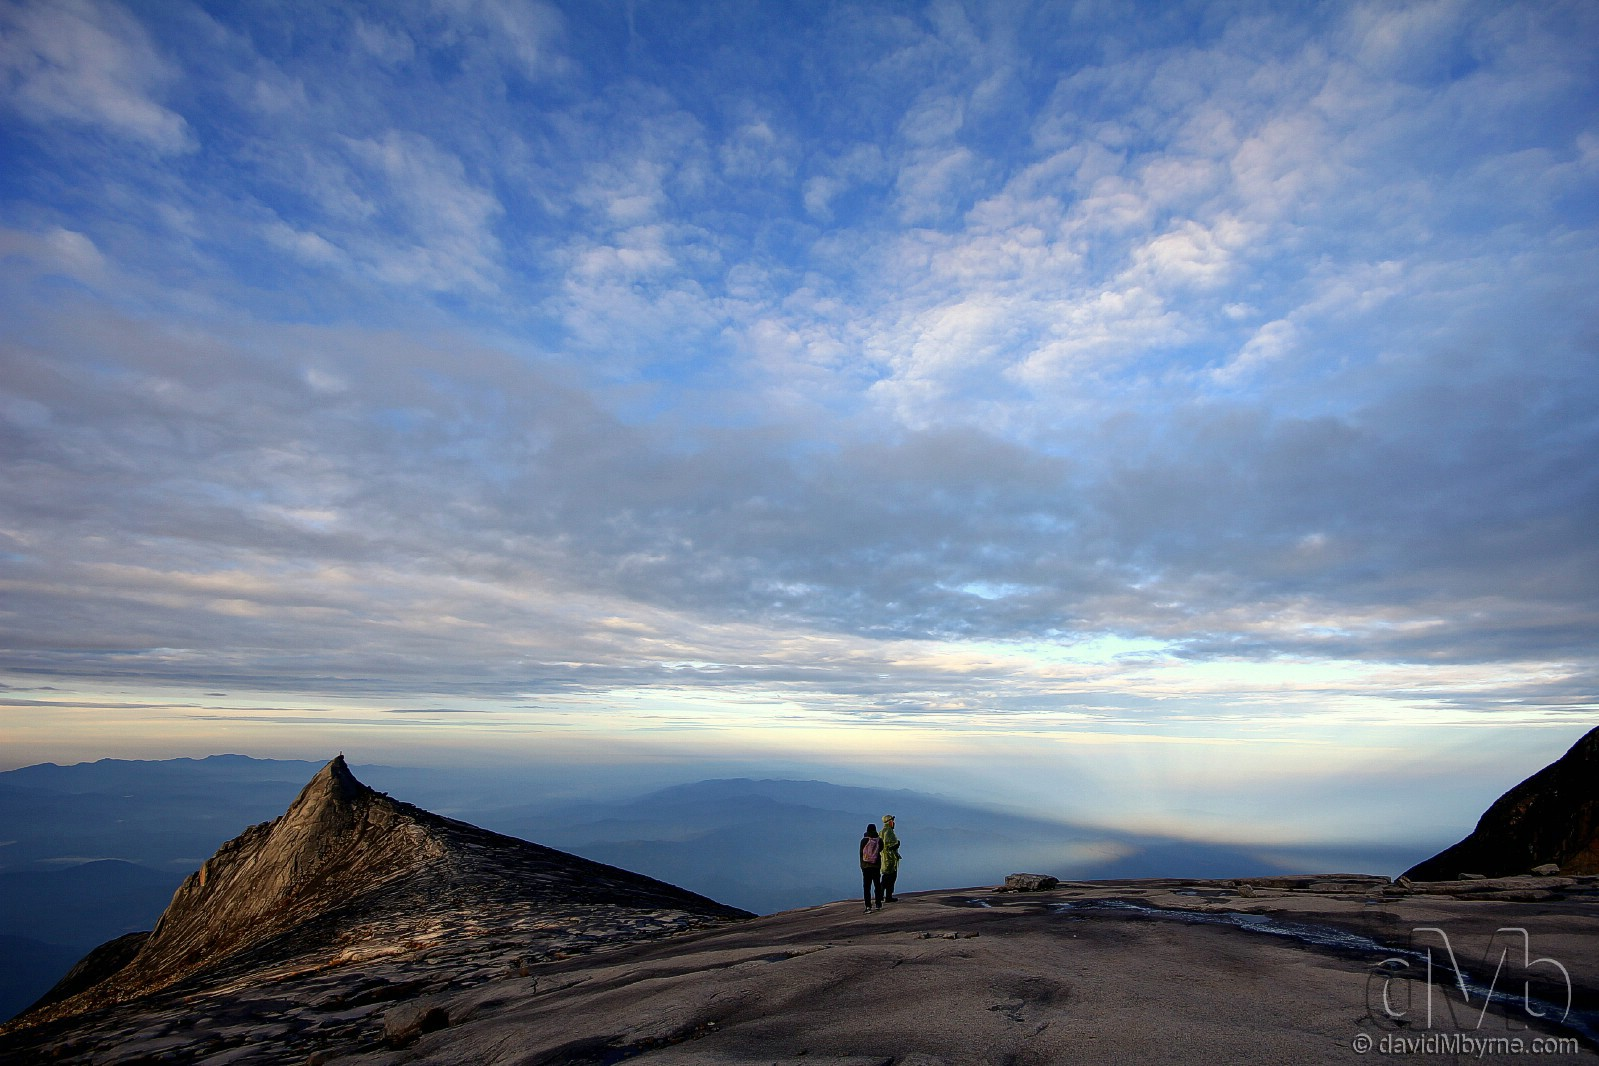 Climbers on the granite expanse leading to the summit of Mount Kinabalu shortly after sunrise. Sabah, Malaysian Borneo. June 23rd, 2012 (EOS 60D || Sigma 10-20mm || 10mm, 1/125sec, f/8.0, iso100)